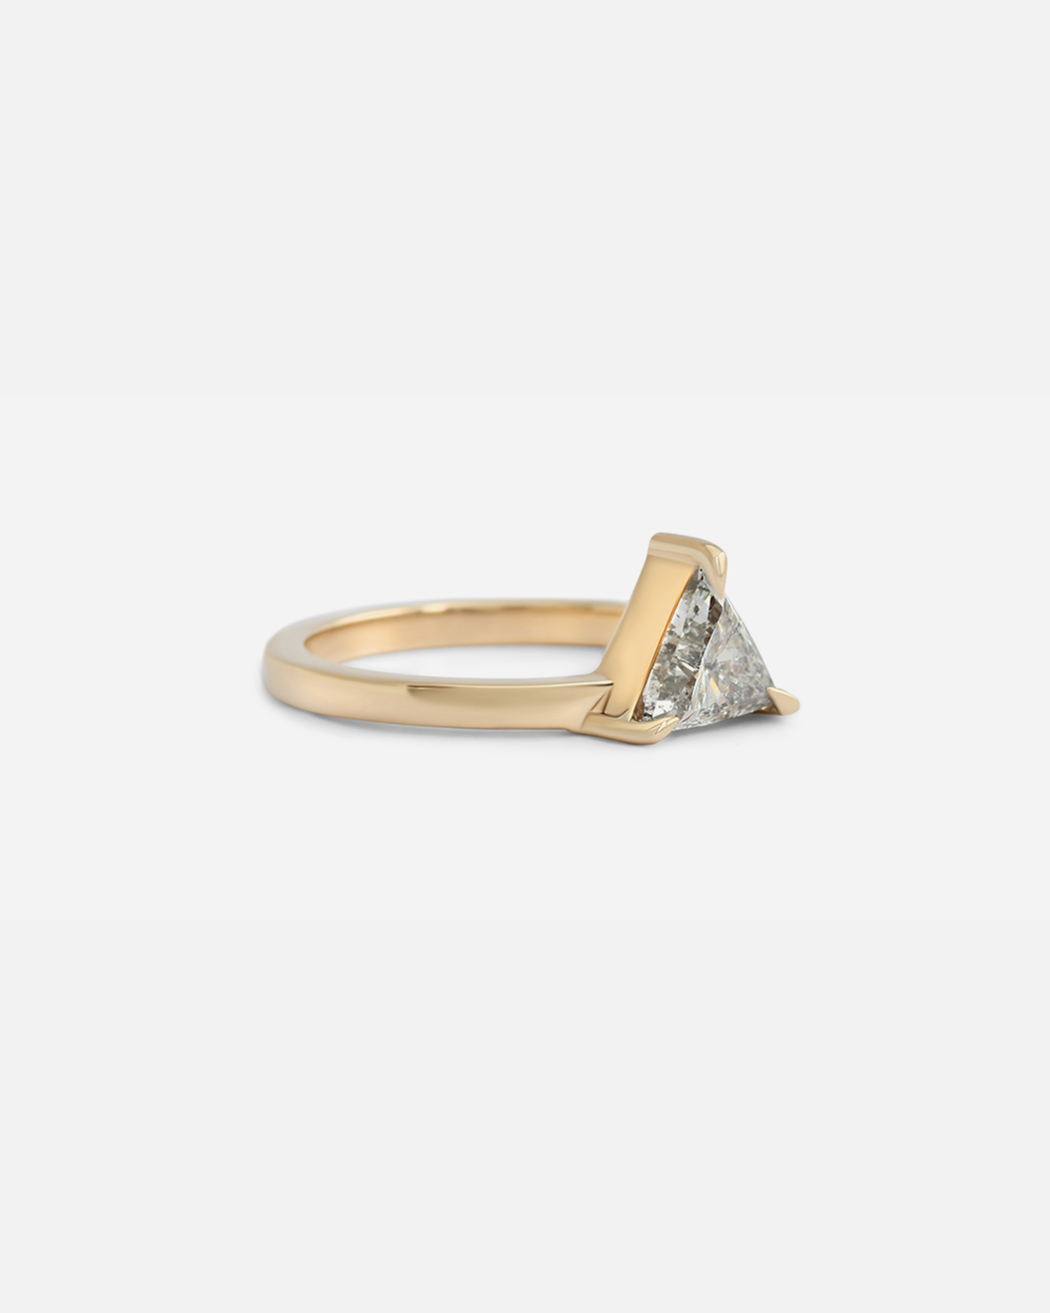 Giza Ring / White Triangular Diamond by #vendor - ENGAGEMENT